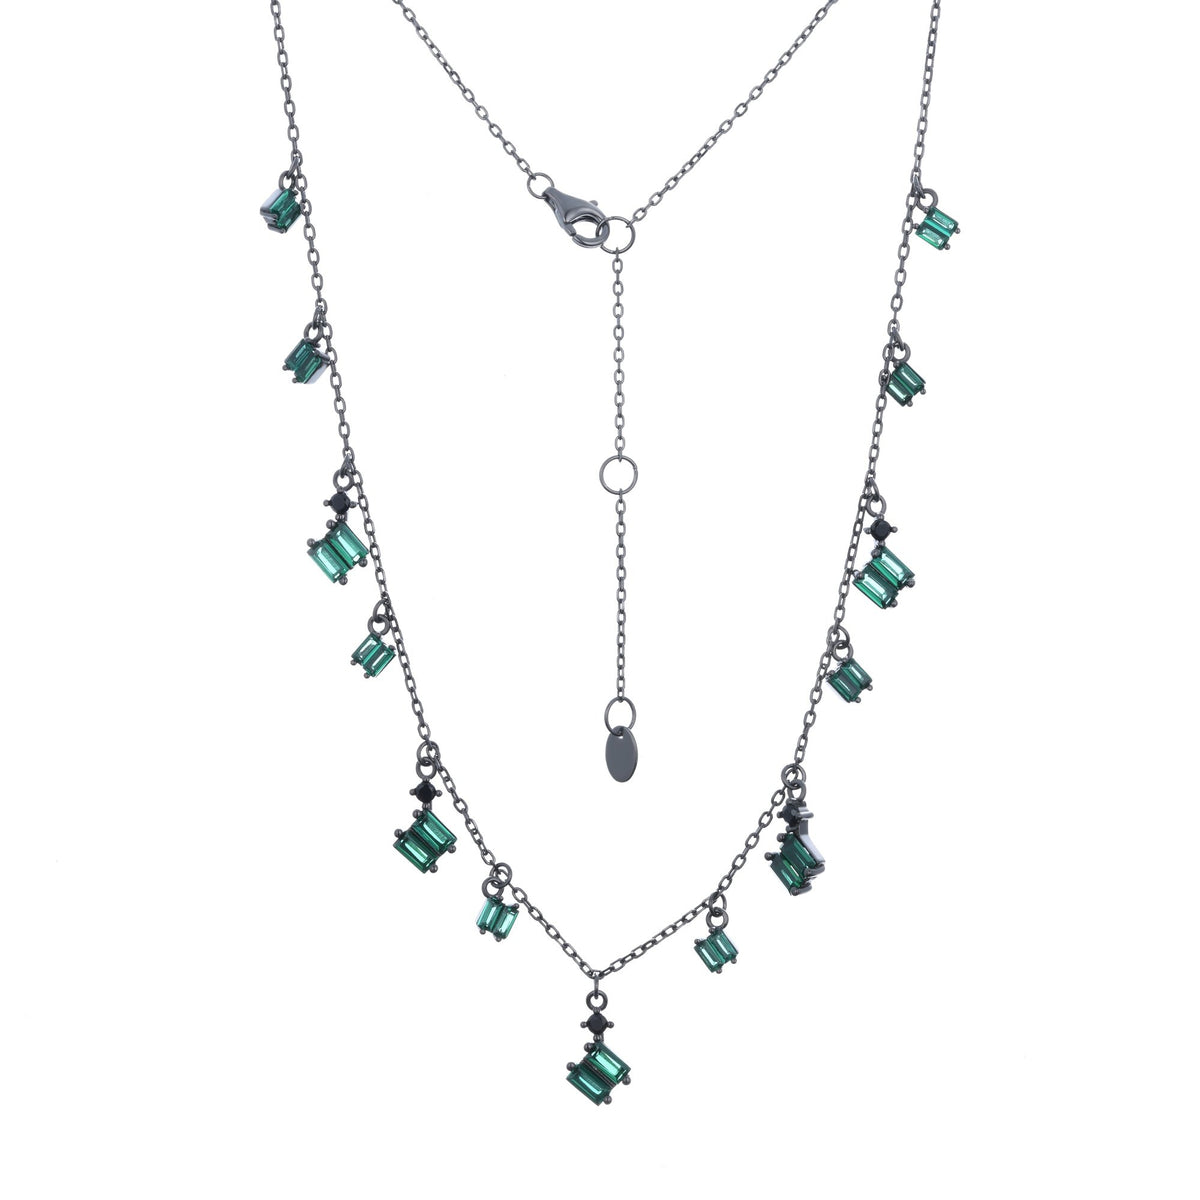 Ferentina | Zabaione Necklace | 925 Silver | Green & White CZ | Black Rhodium Plated